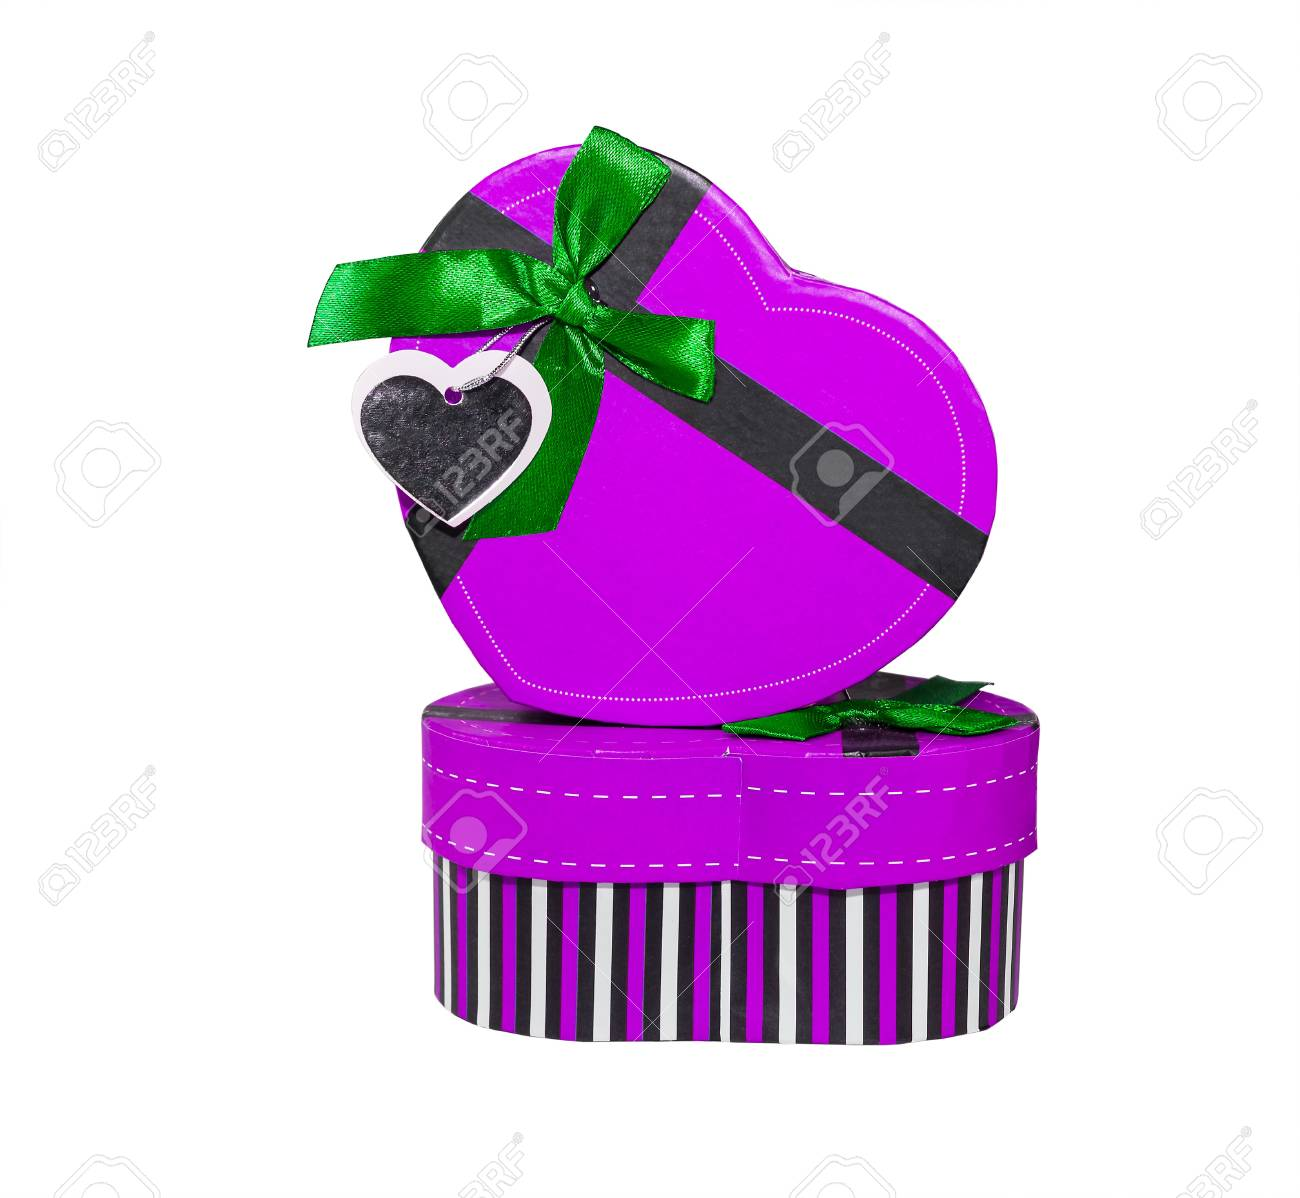 Violet Heart shaped box in heart shape on white background Stock Photo - 17682445